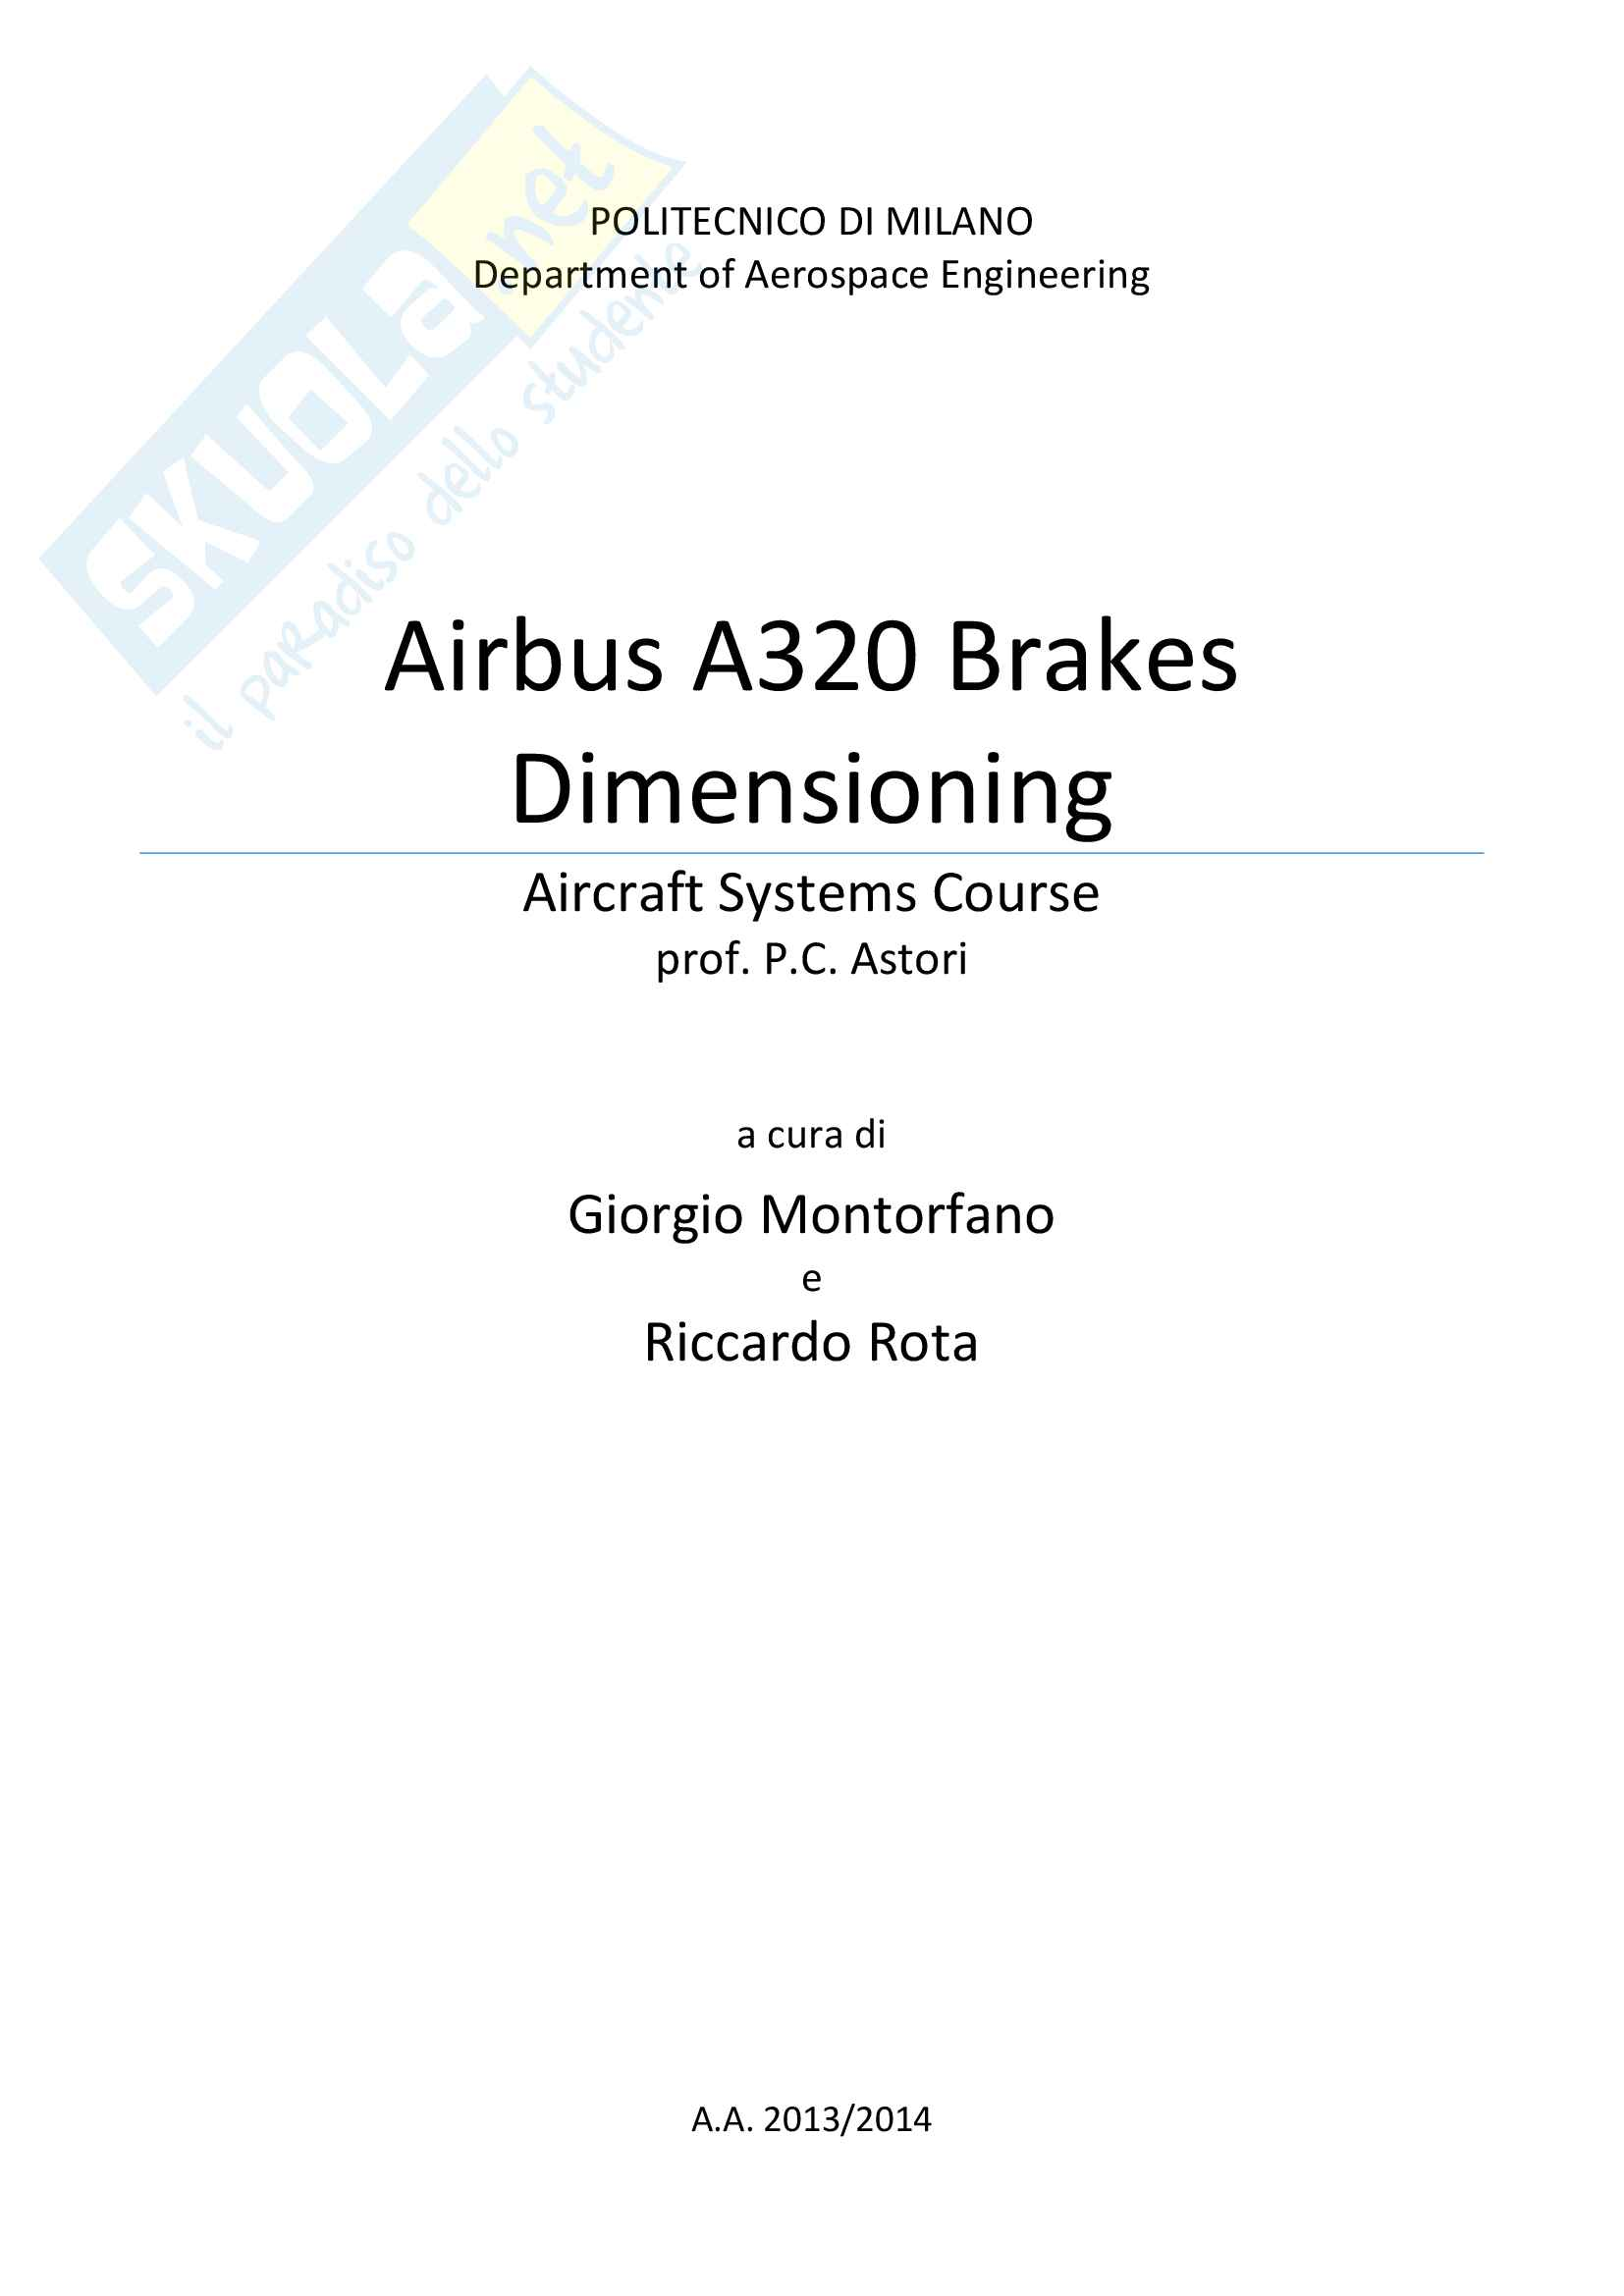 Airbus A320 Brakes Dimensioning